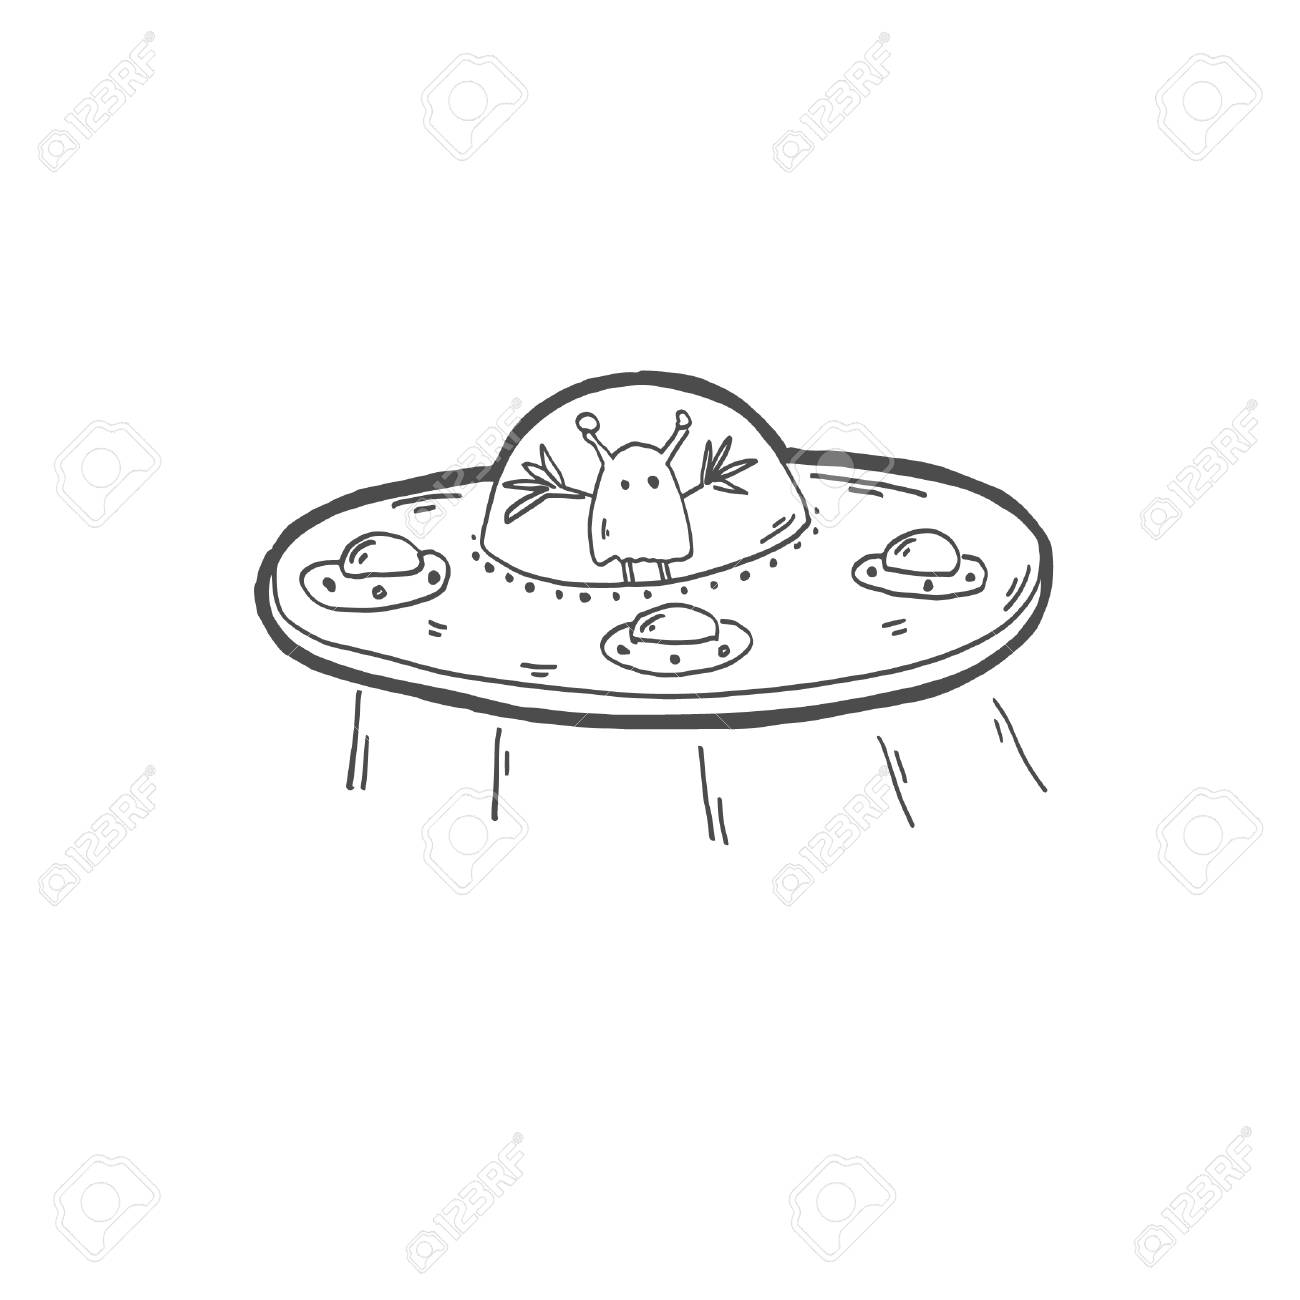 Sketch Drawing Doodle Icon Of Strange Alien In A Flying Saucer Royalty Free Cliparts Vectors And Stock Illustration Image 124679454